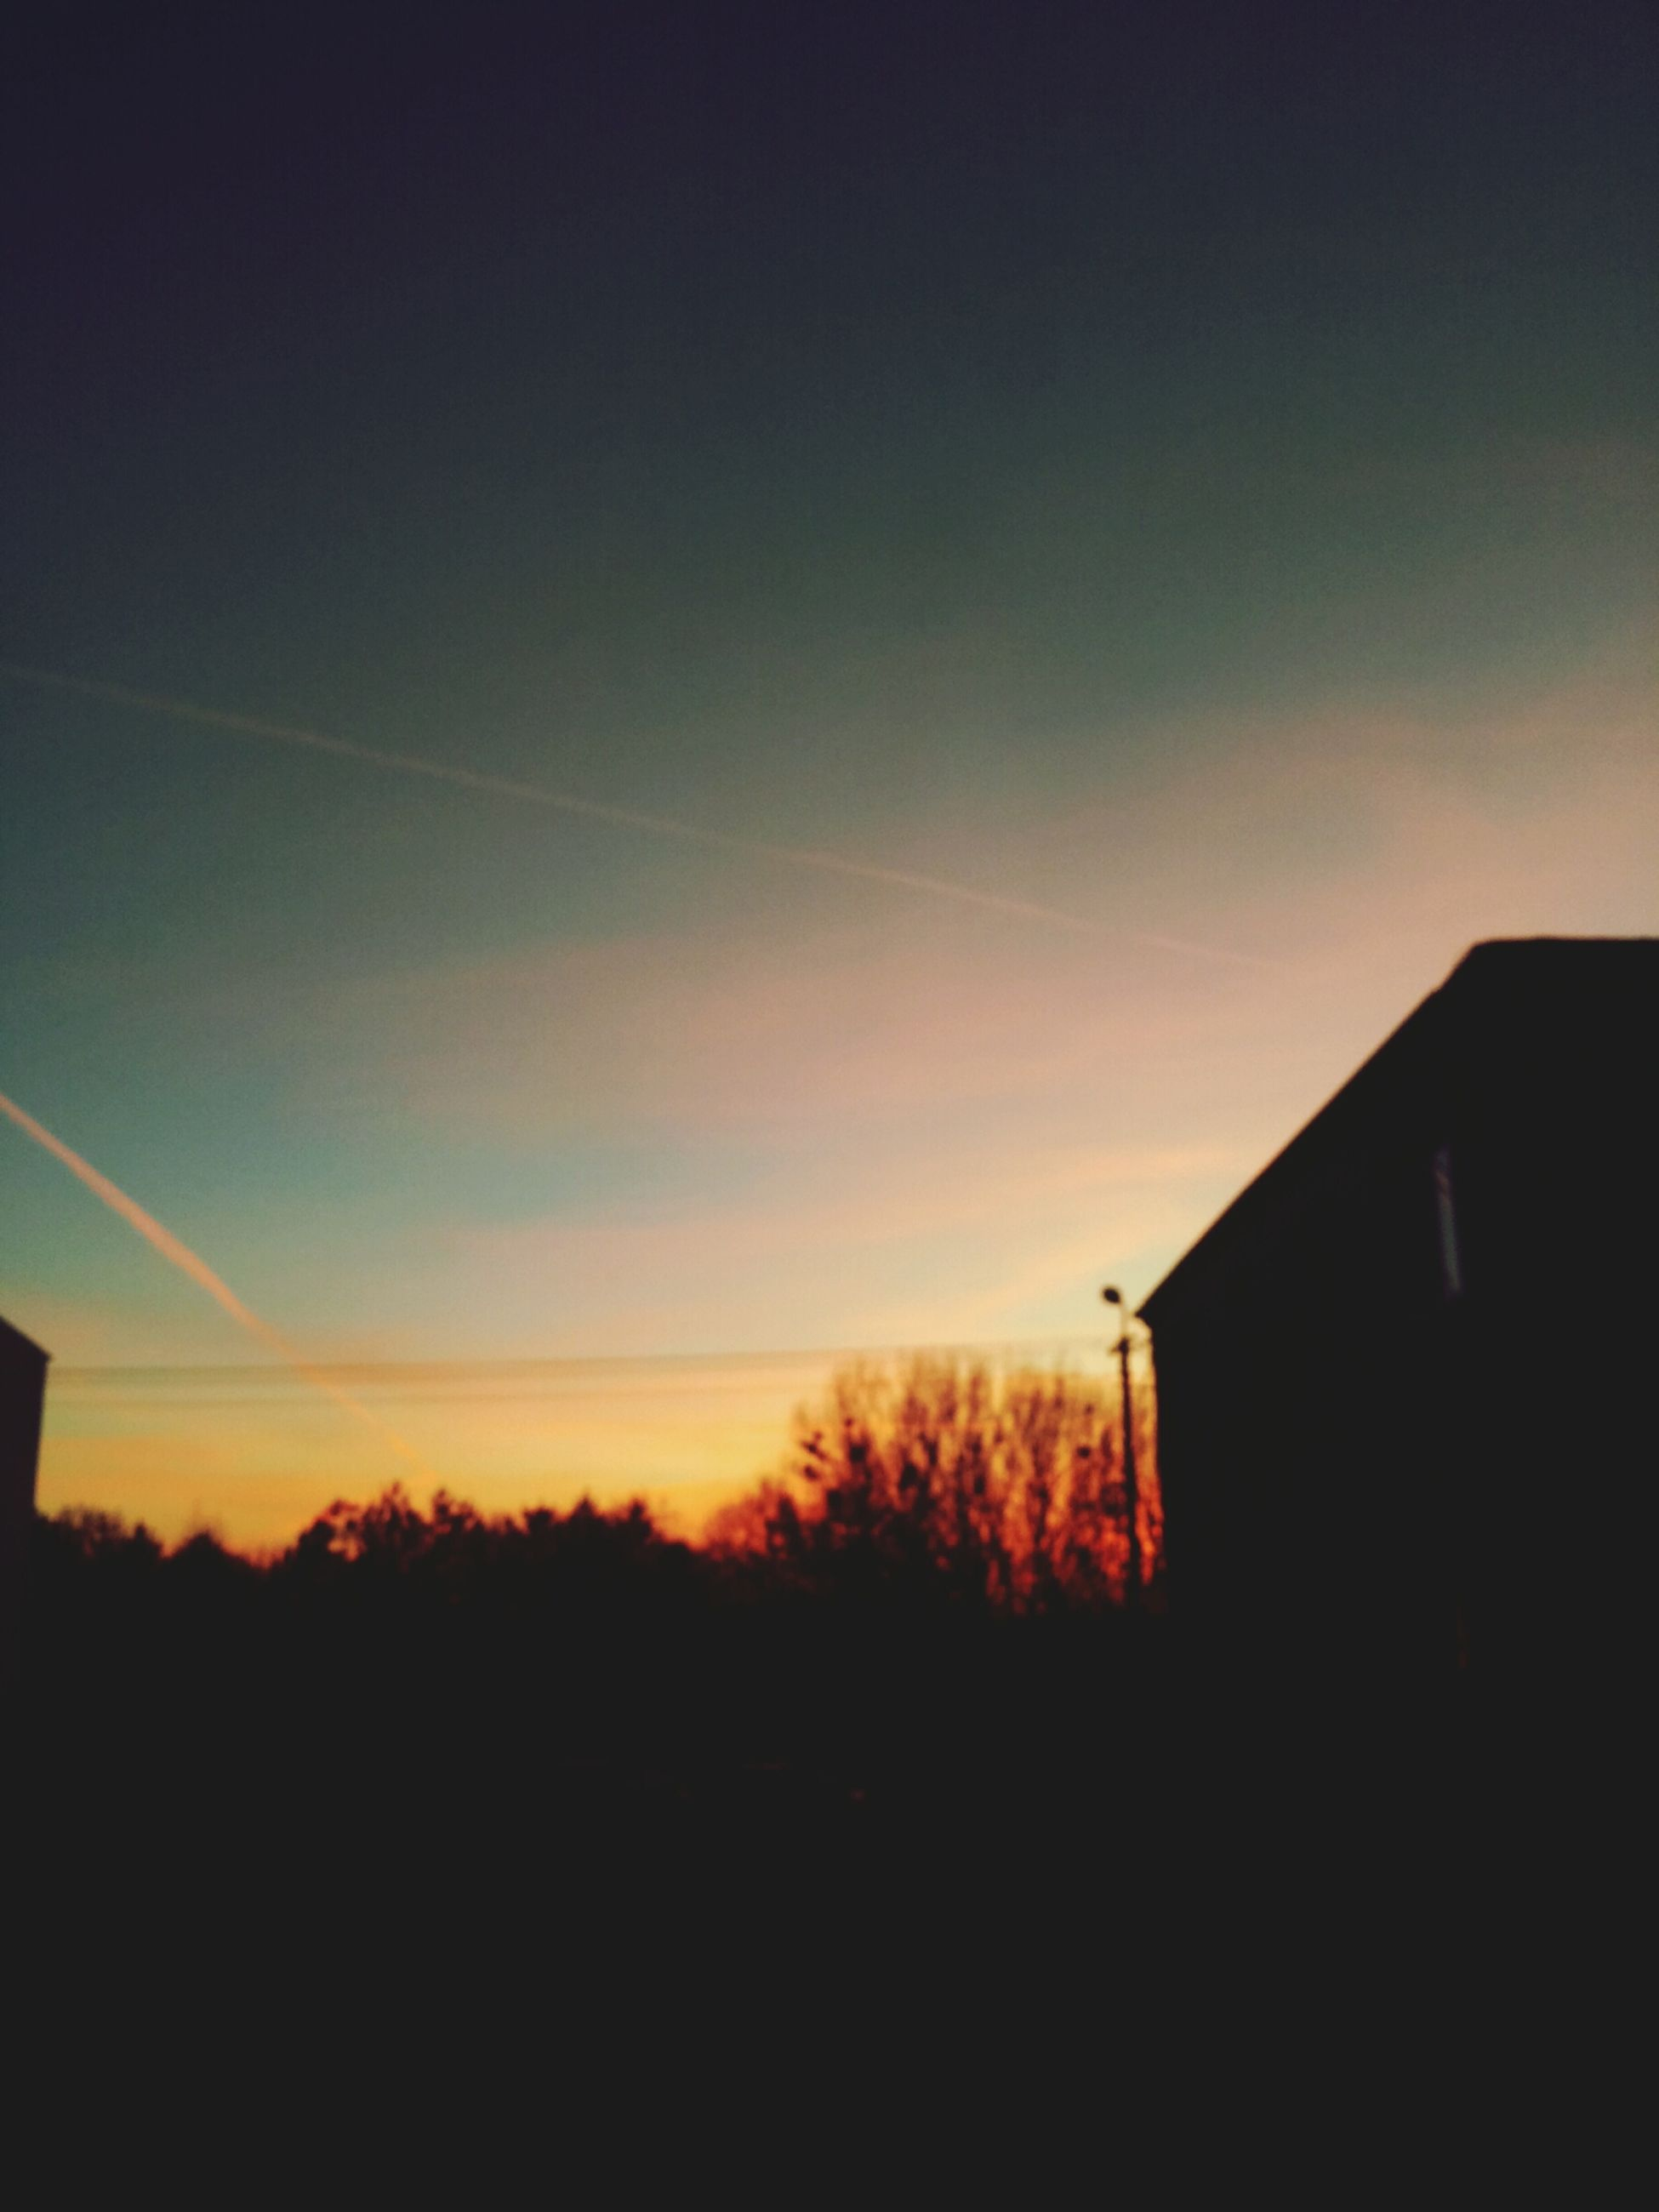 sunset, silhouette, building exterior, built structure, architecture, orange color, house, sky, copy space, tree, beauty in nature, residential structure, nature, scenics, low angle view, dark, outdoors, no people, tranquility, tranquil scene